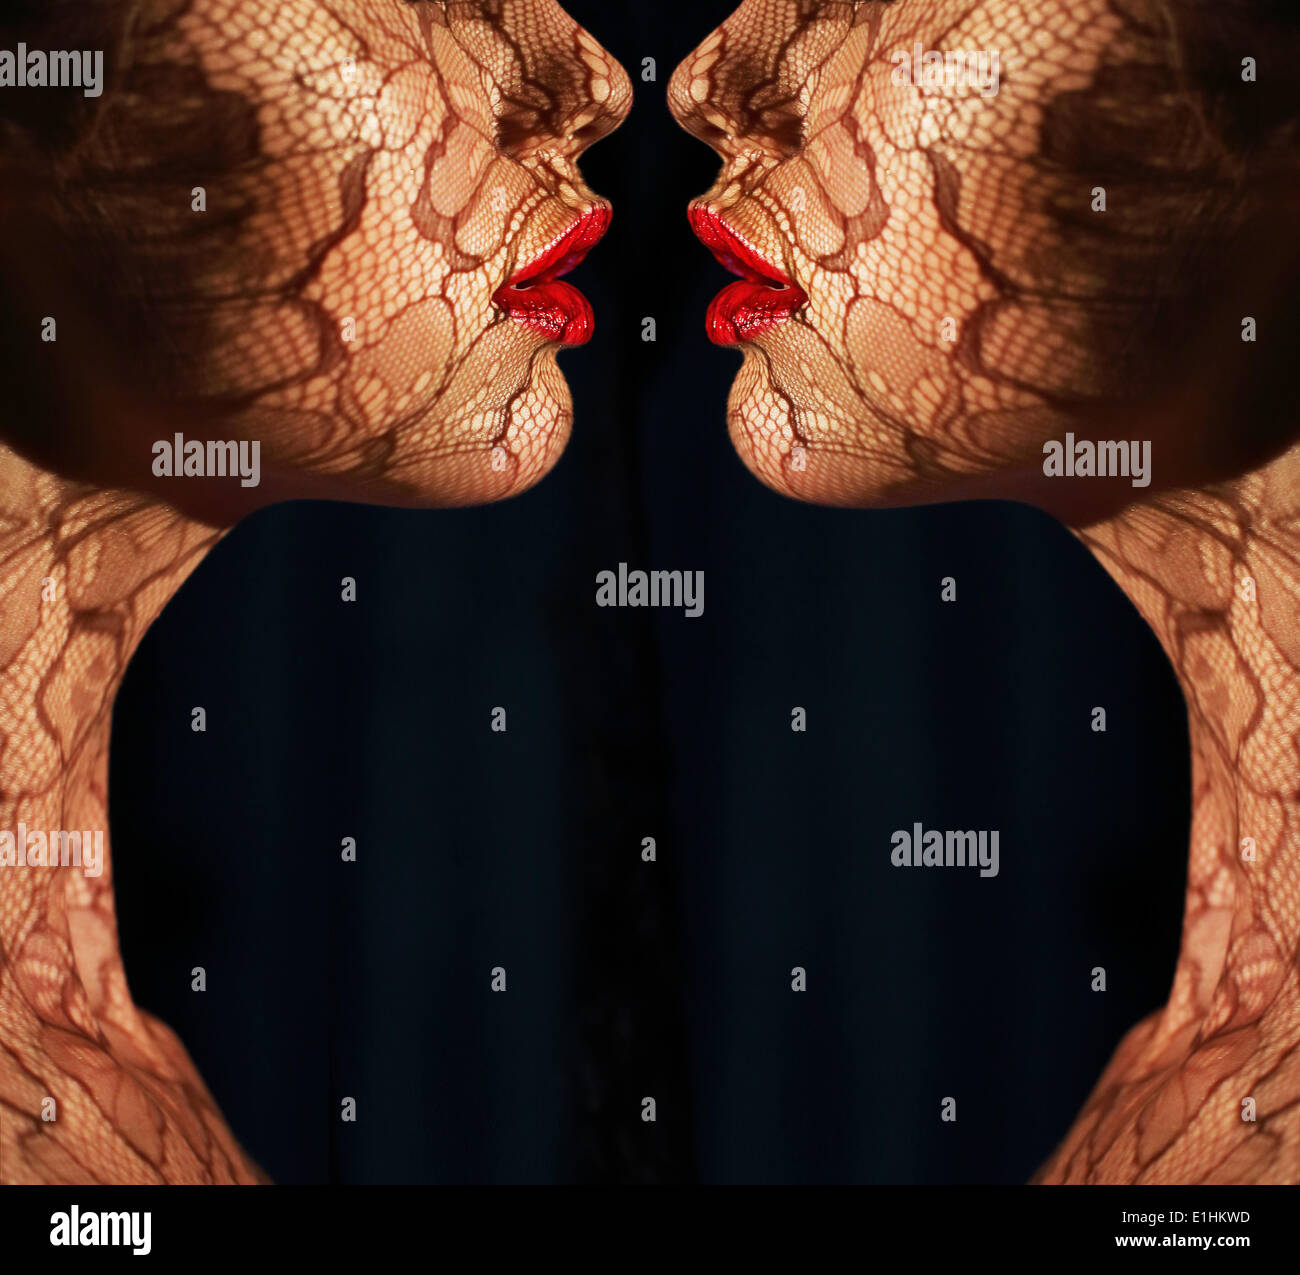 Fantasy. Two Women's Faces with Tracery Opposite each other. Reflexion - Stock Image